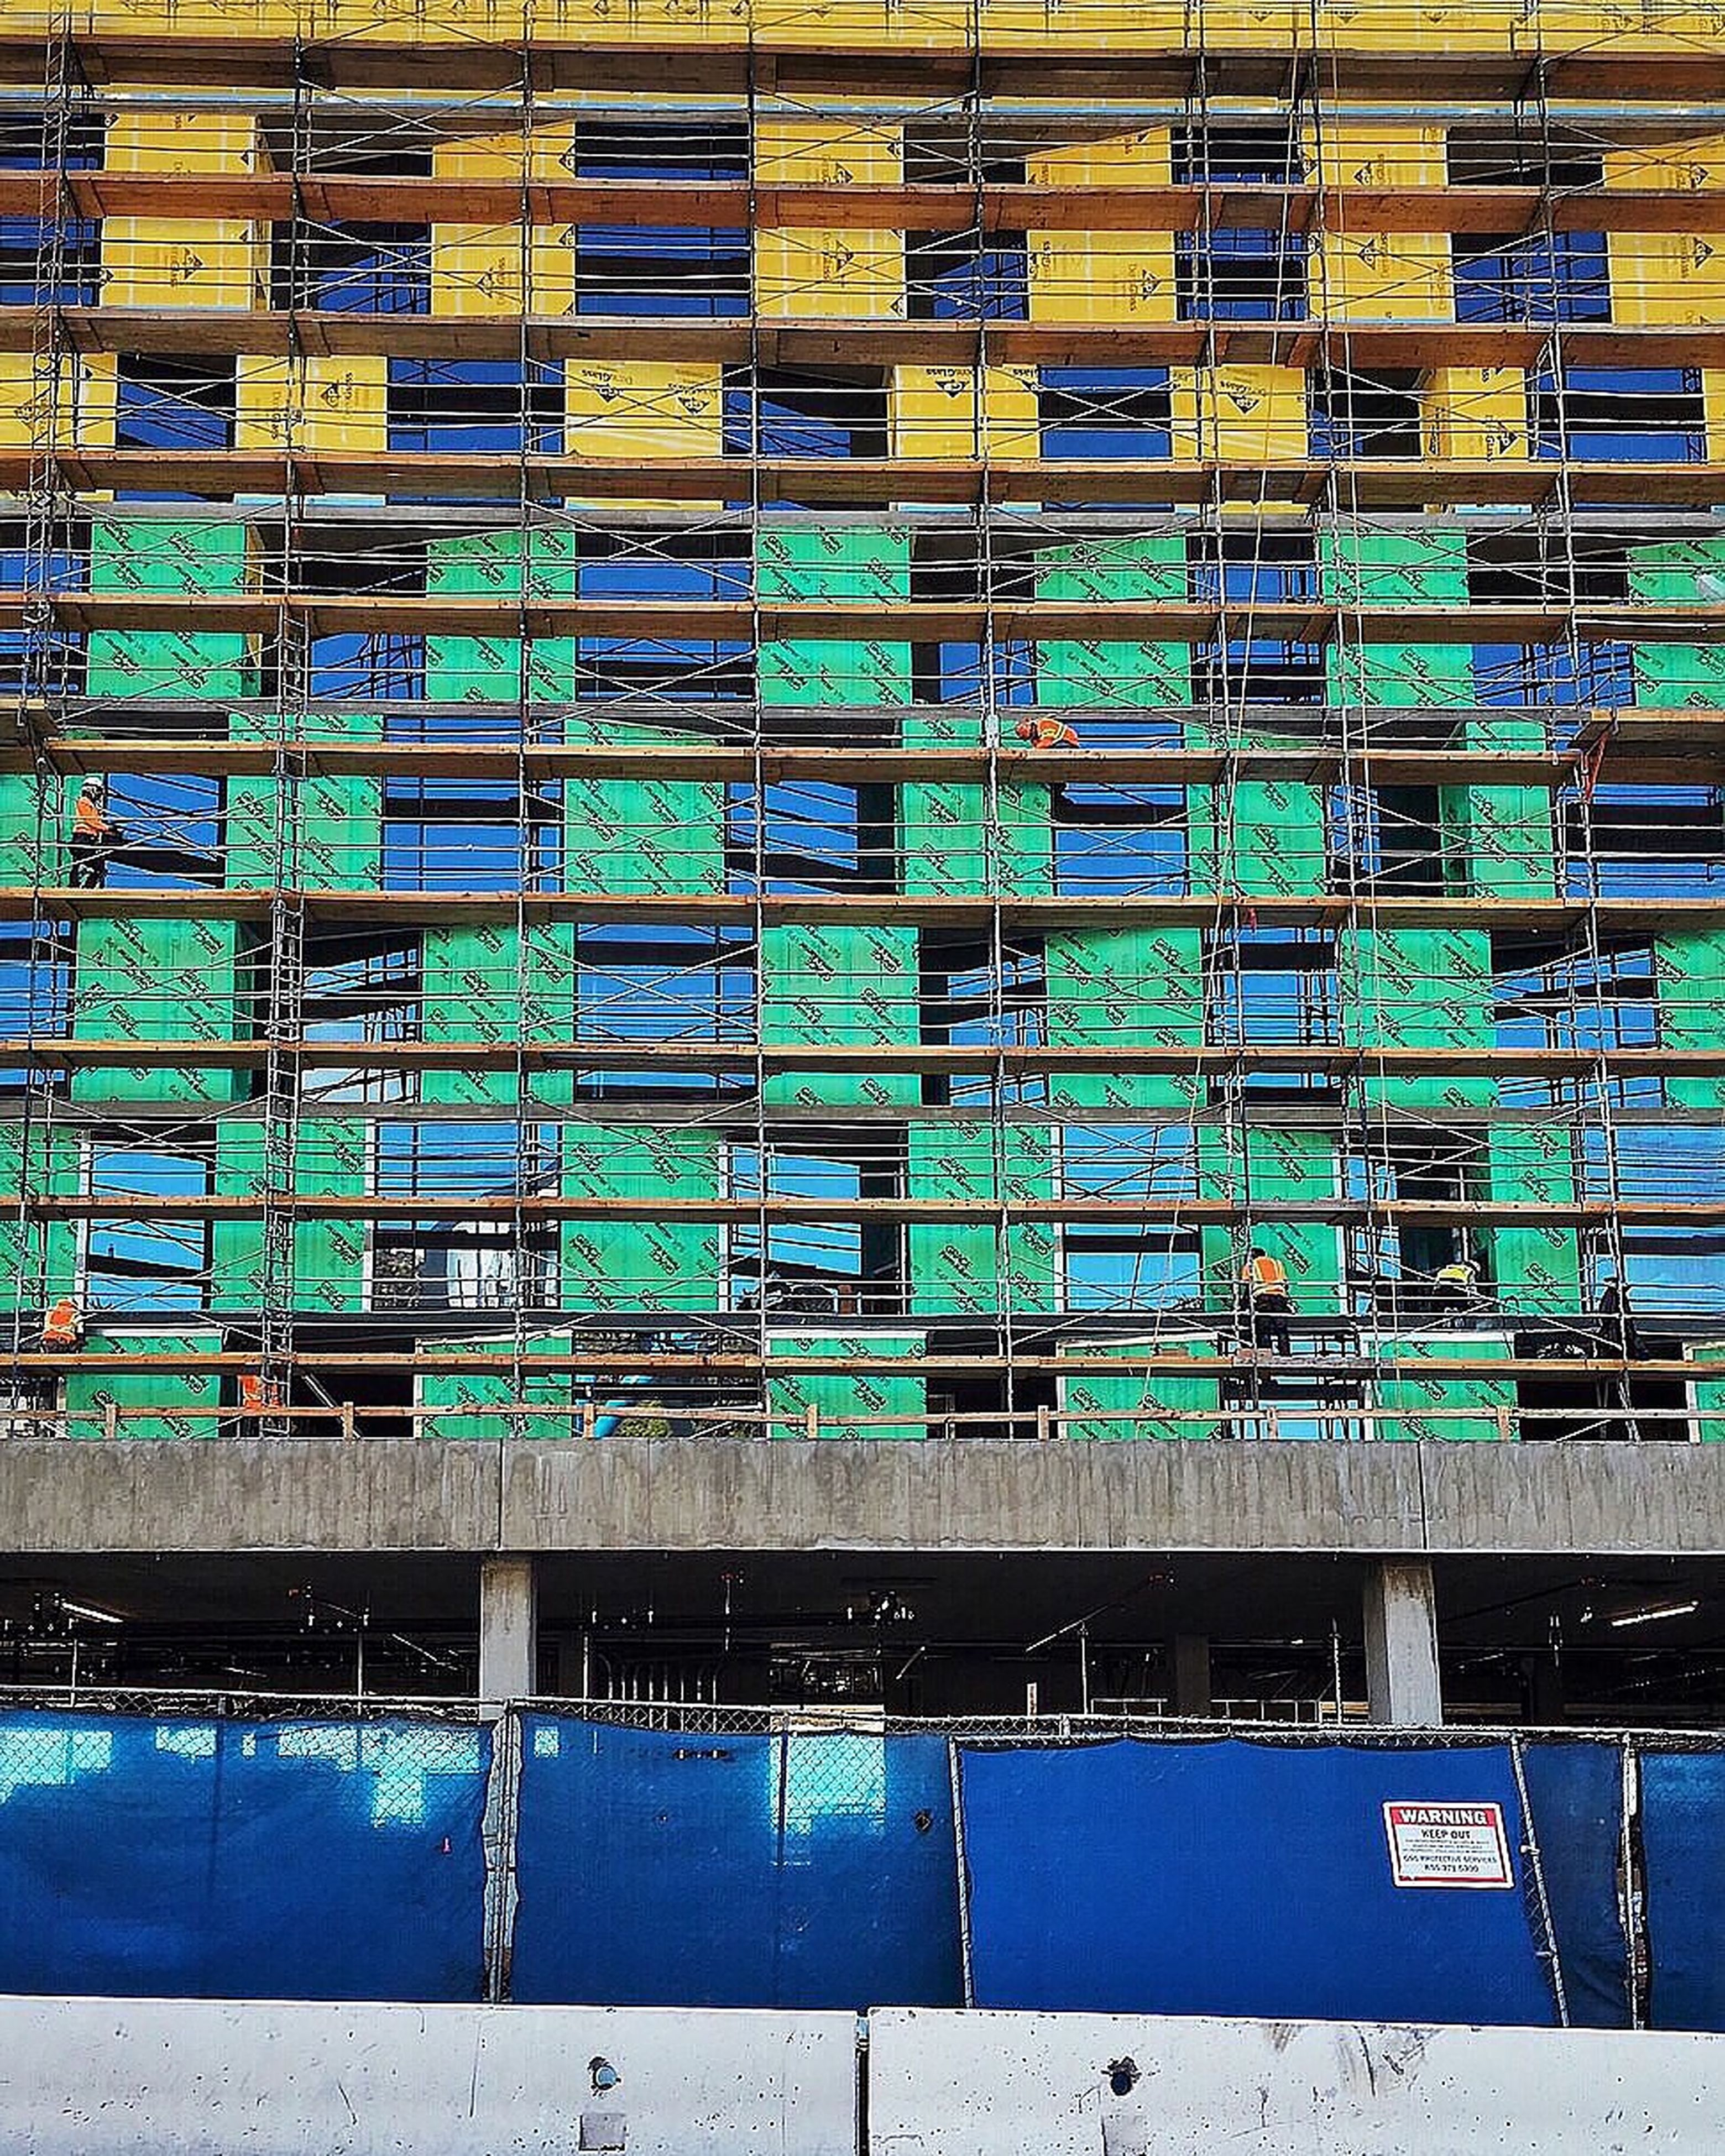 built structure, architecture, building exterior, blue, in a row, full frame, multi colored, backgrounds, outdoors, building, no people, day, repetition, side by side, city, reflection, railing, pattern, wall - building feature, window